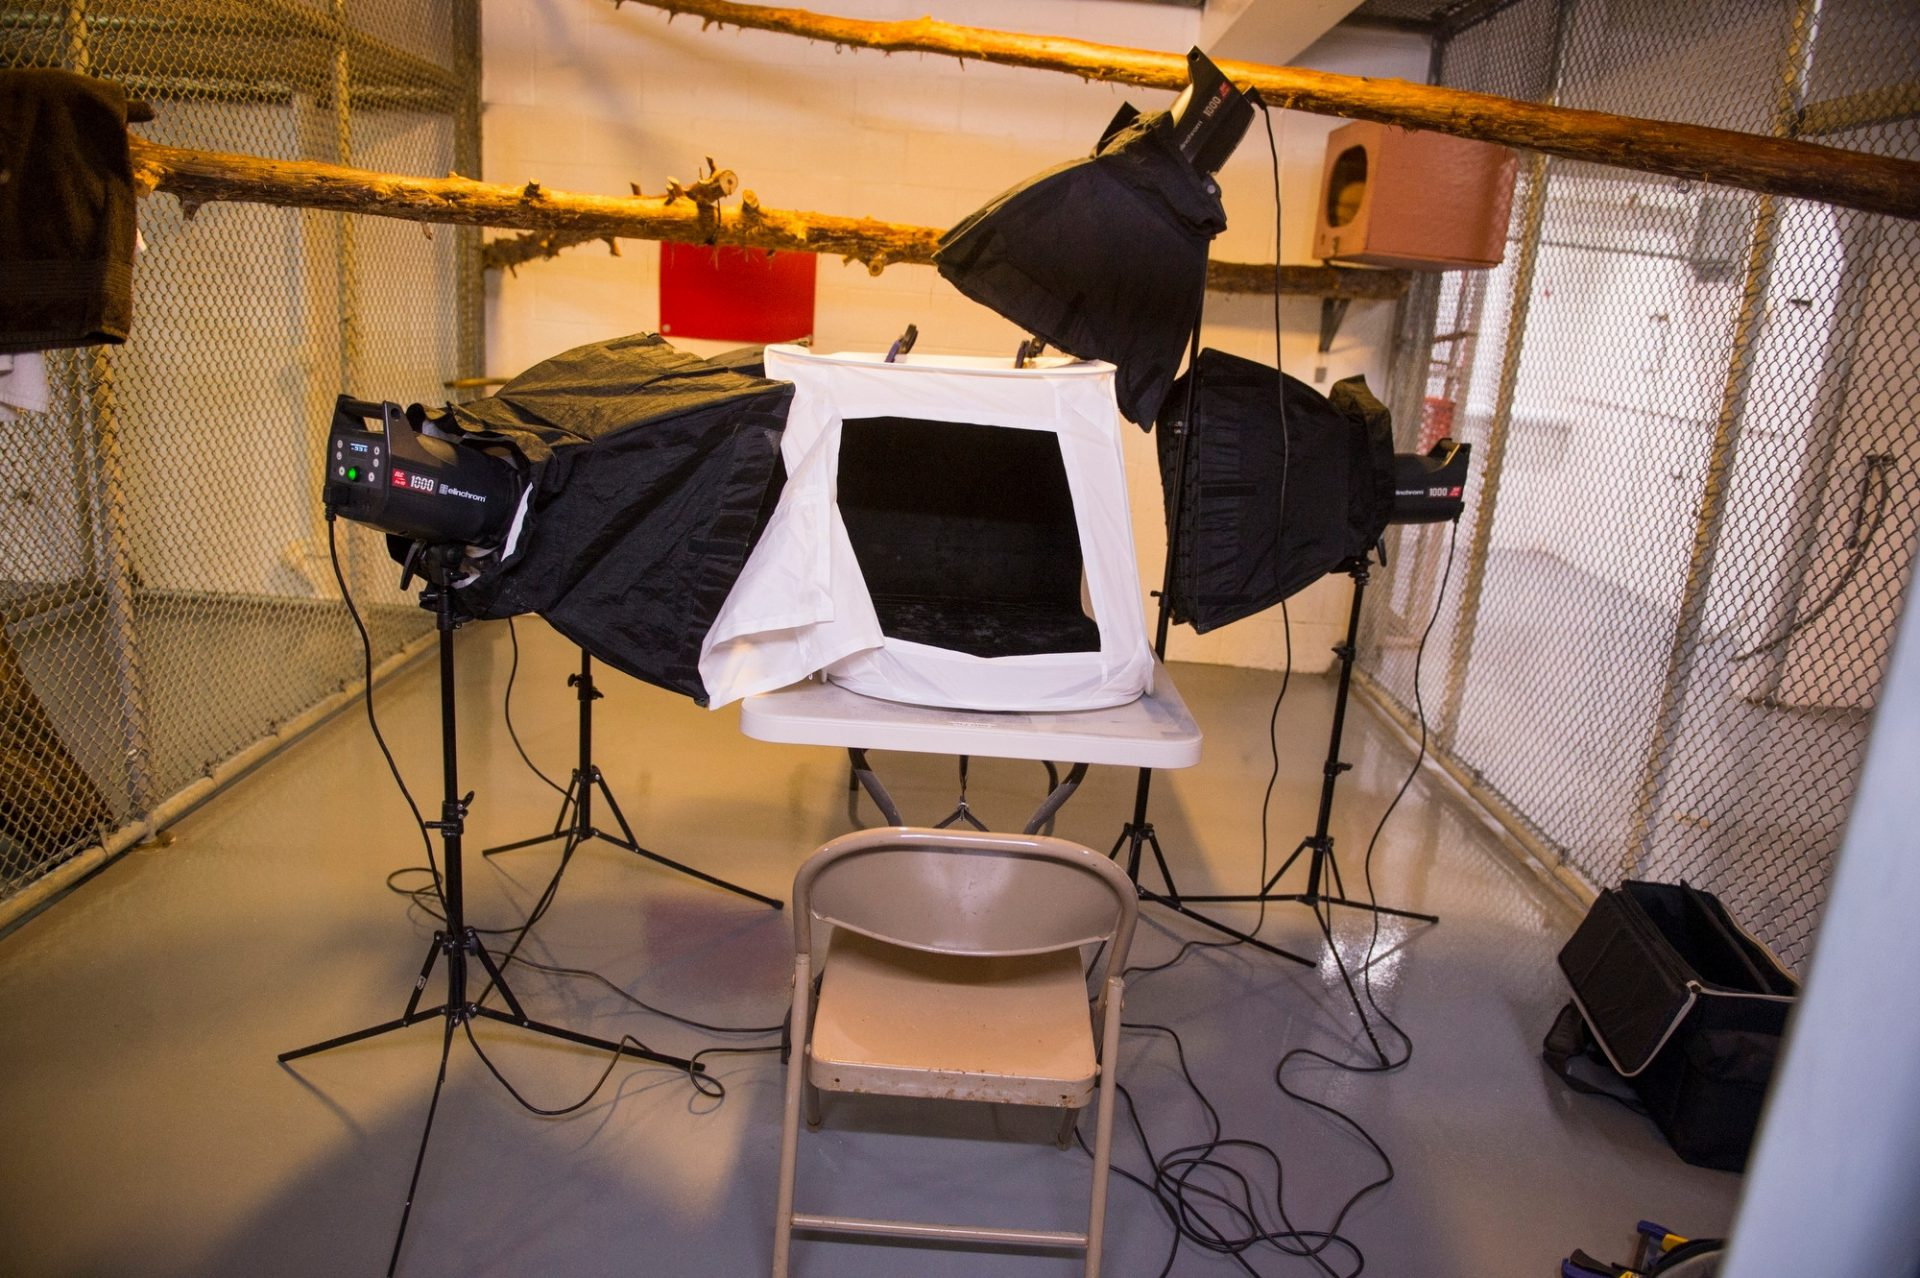 Photo: A light box and softboxes for a shoot at the St. Louis zoo.